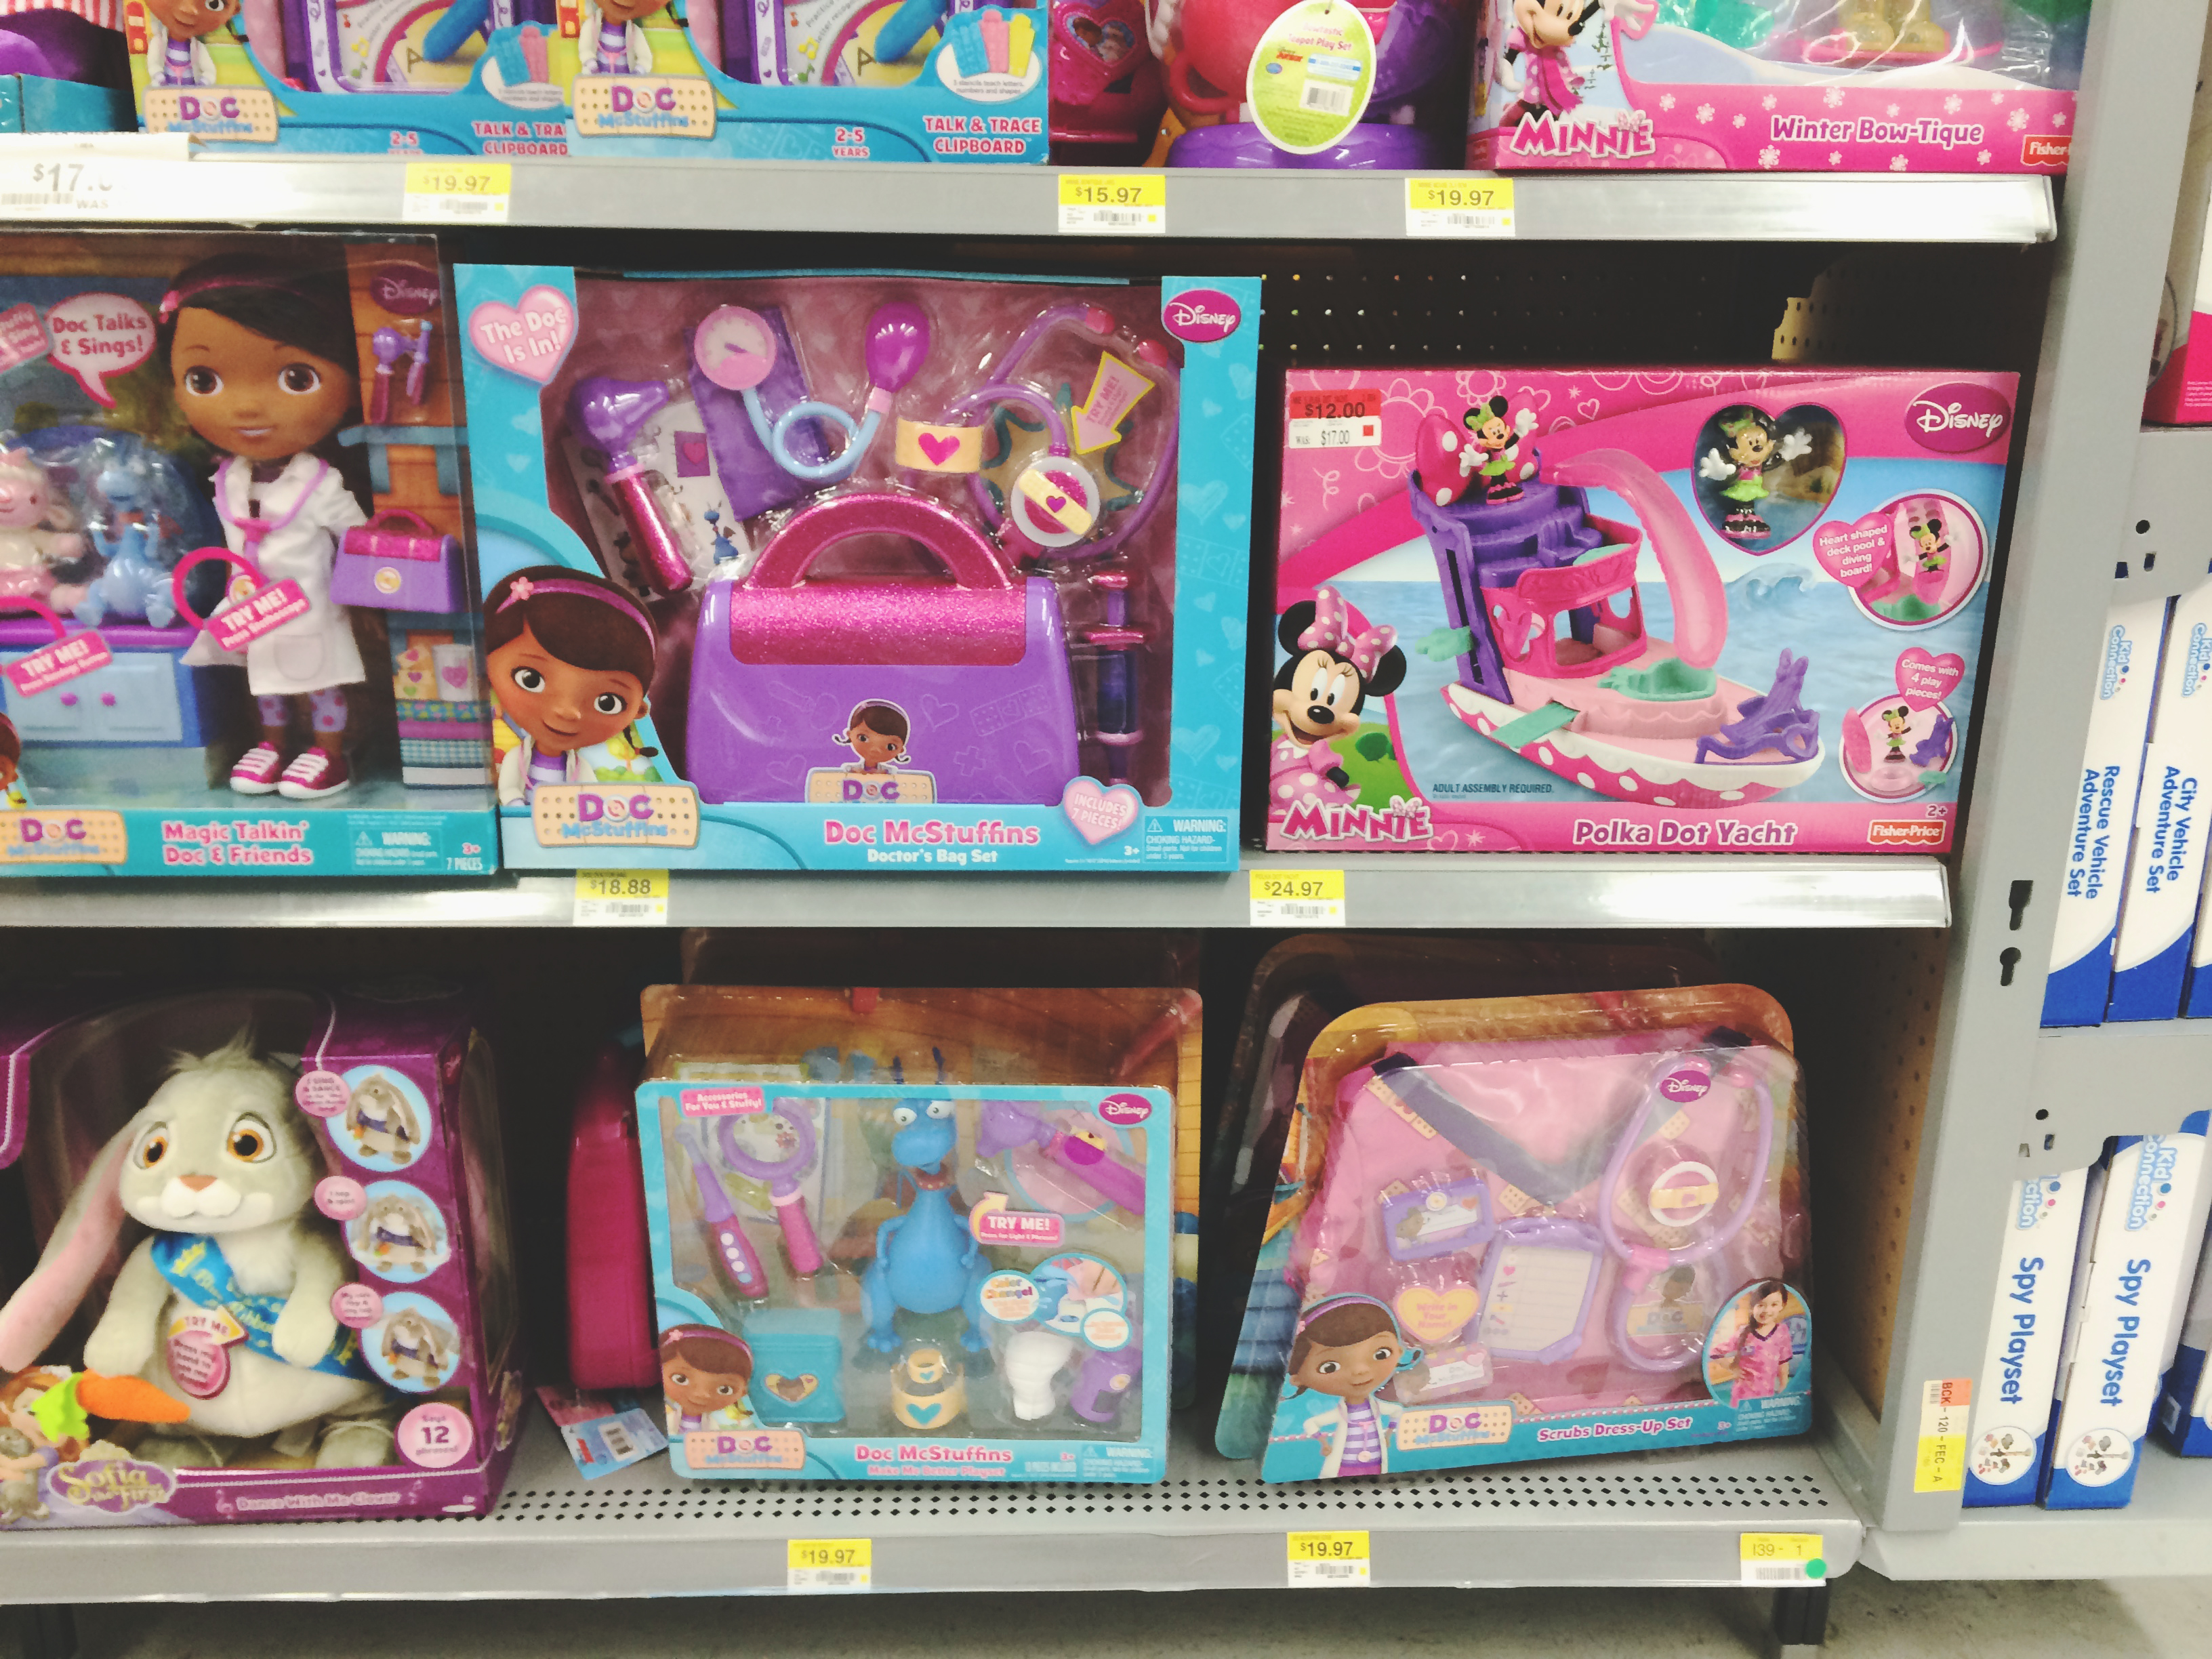 Doc McStuffins toys #JuniorCelebrates #CollectiveBias #shop